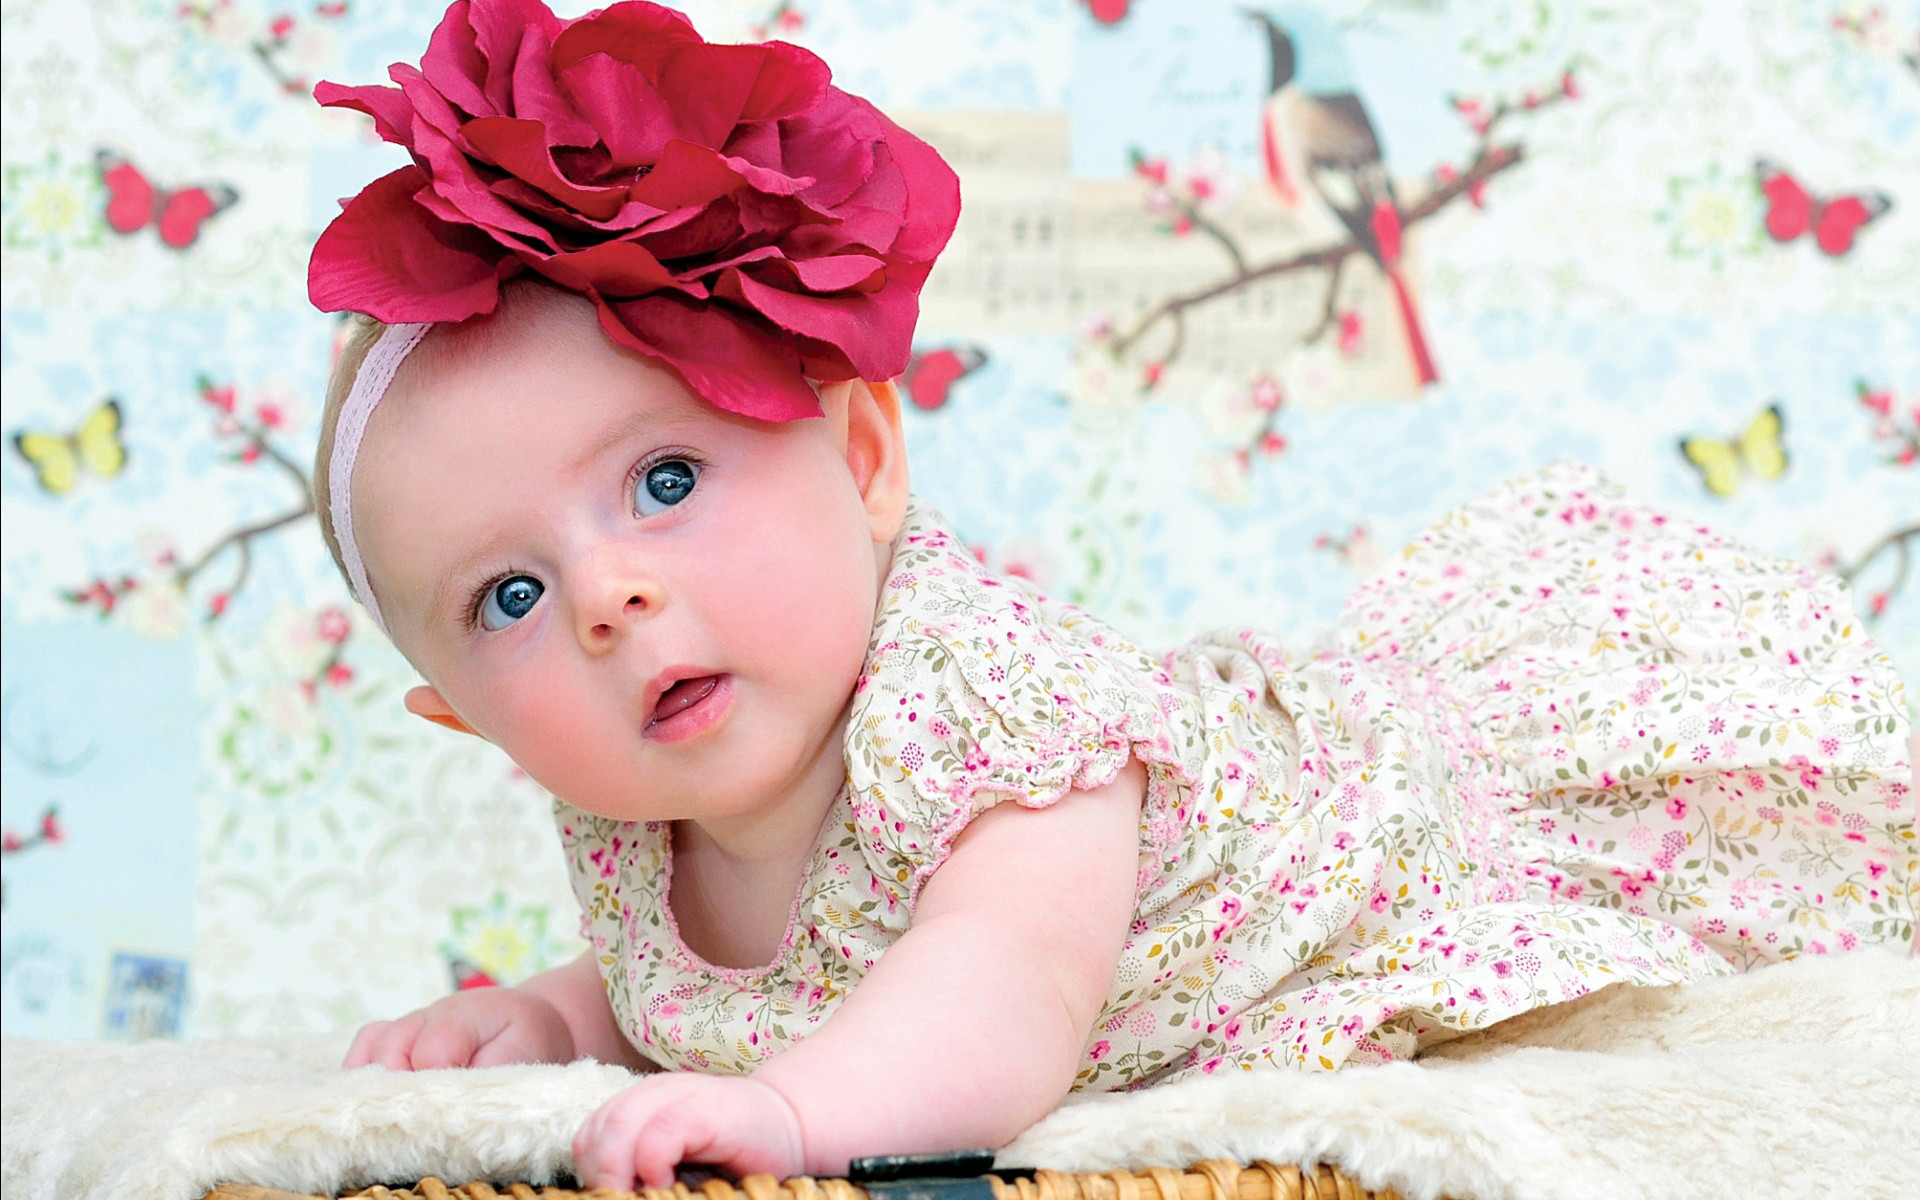 Cute Baby Girl Wallpaper Cool Pictures #6om8053a – Yoanu